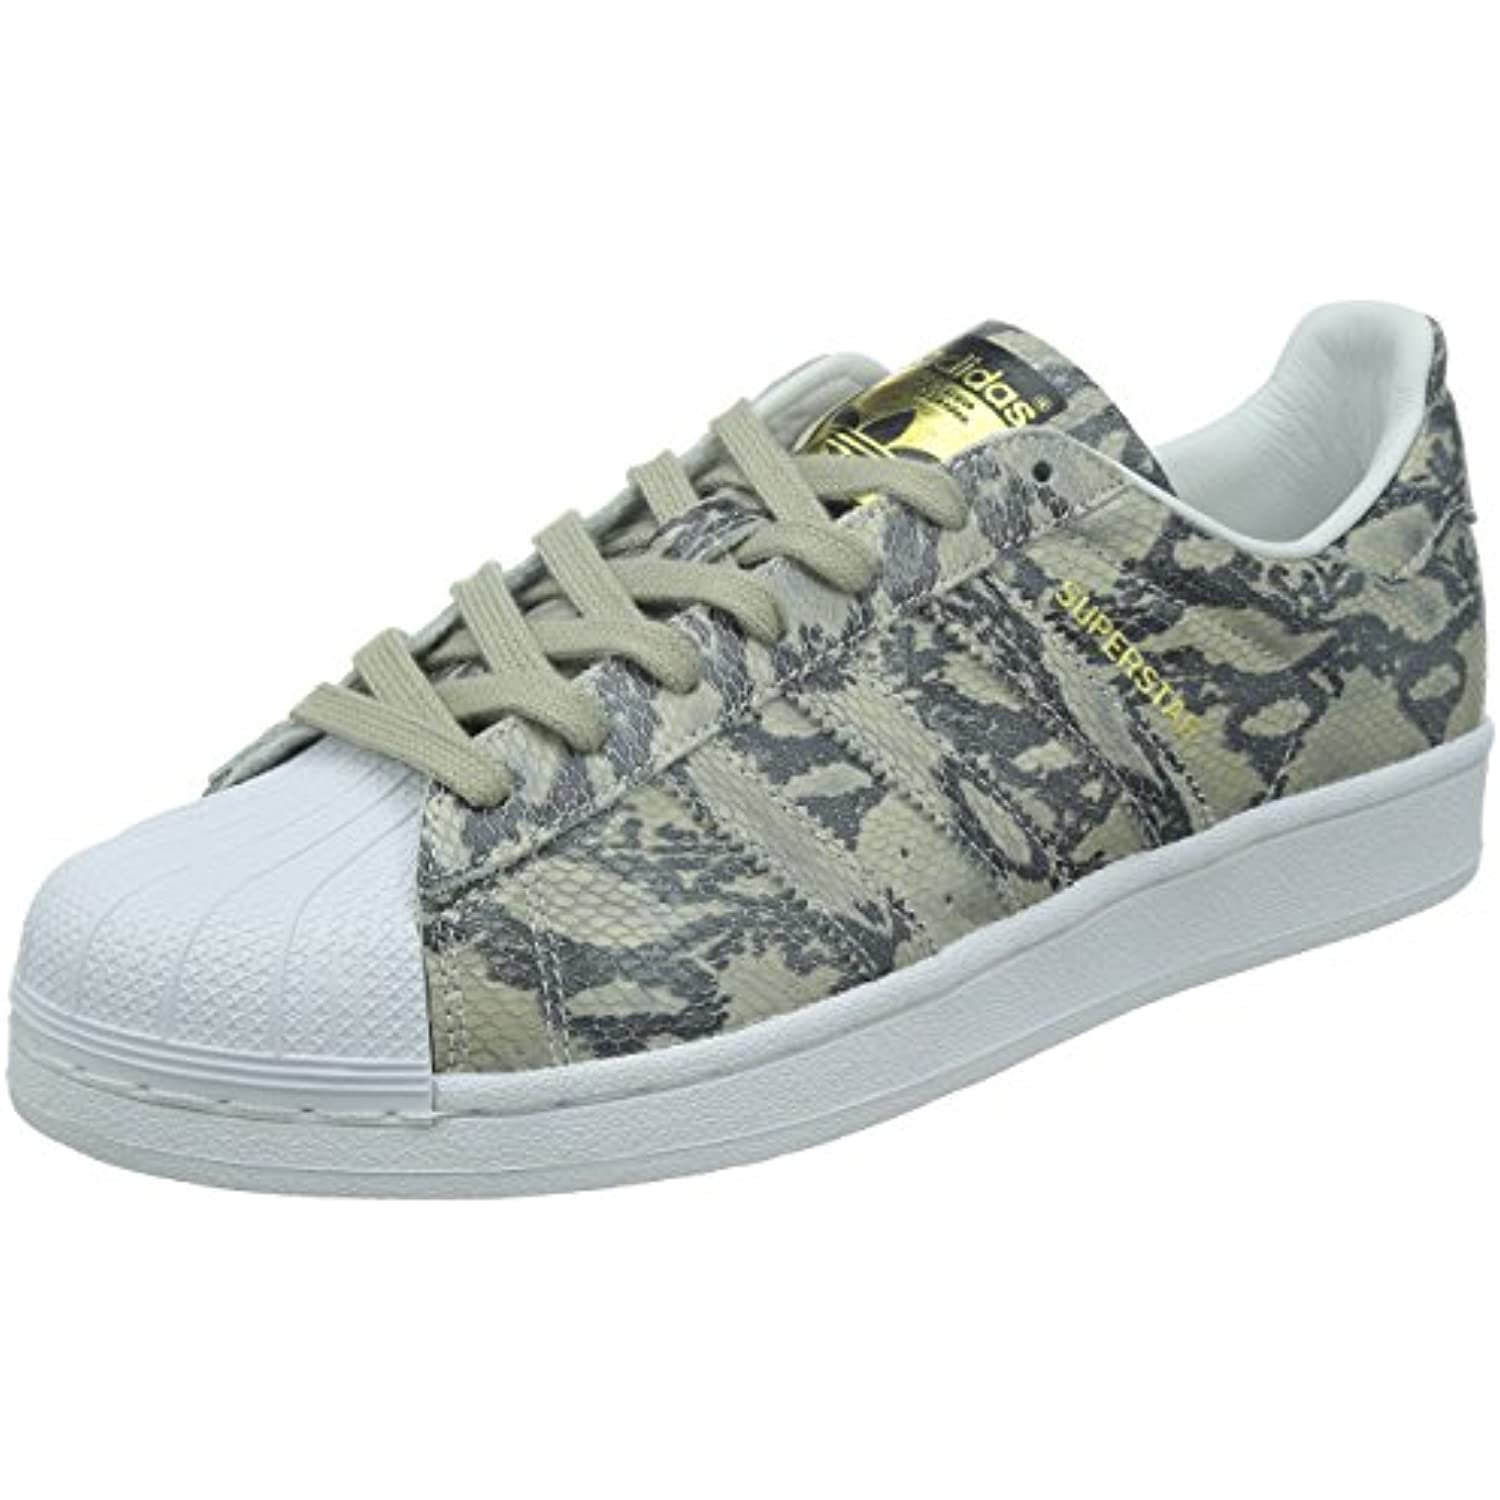 723e40b00081f Adidas Superstar East River Rival Rival Rival B34375, Basket B00PBWNZD6 - |  Des Styles Différents 4863ce